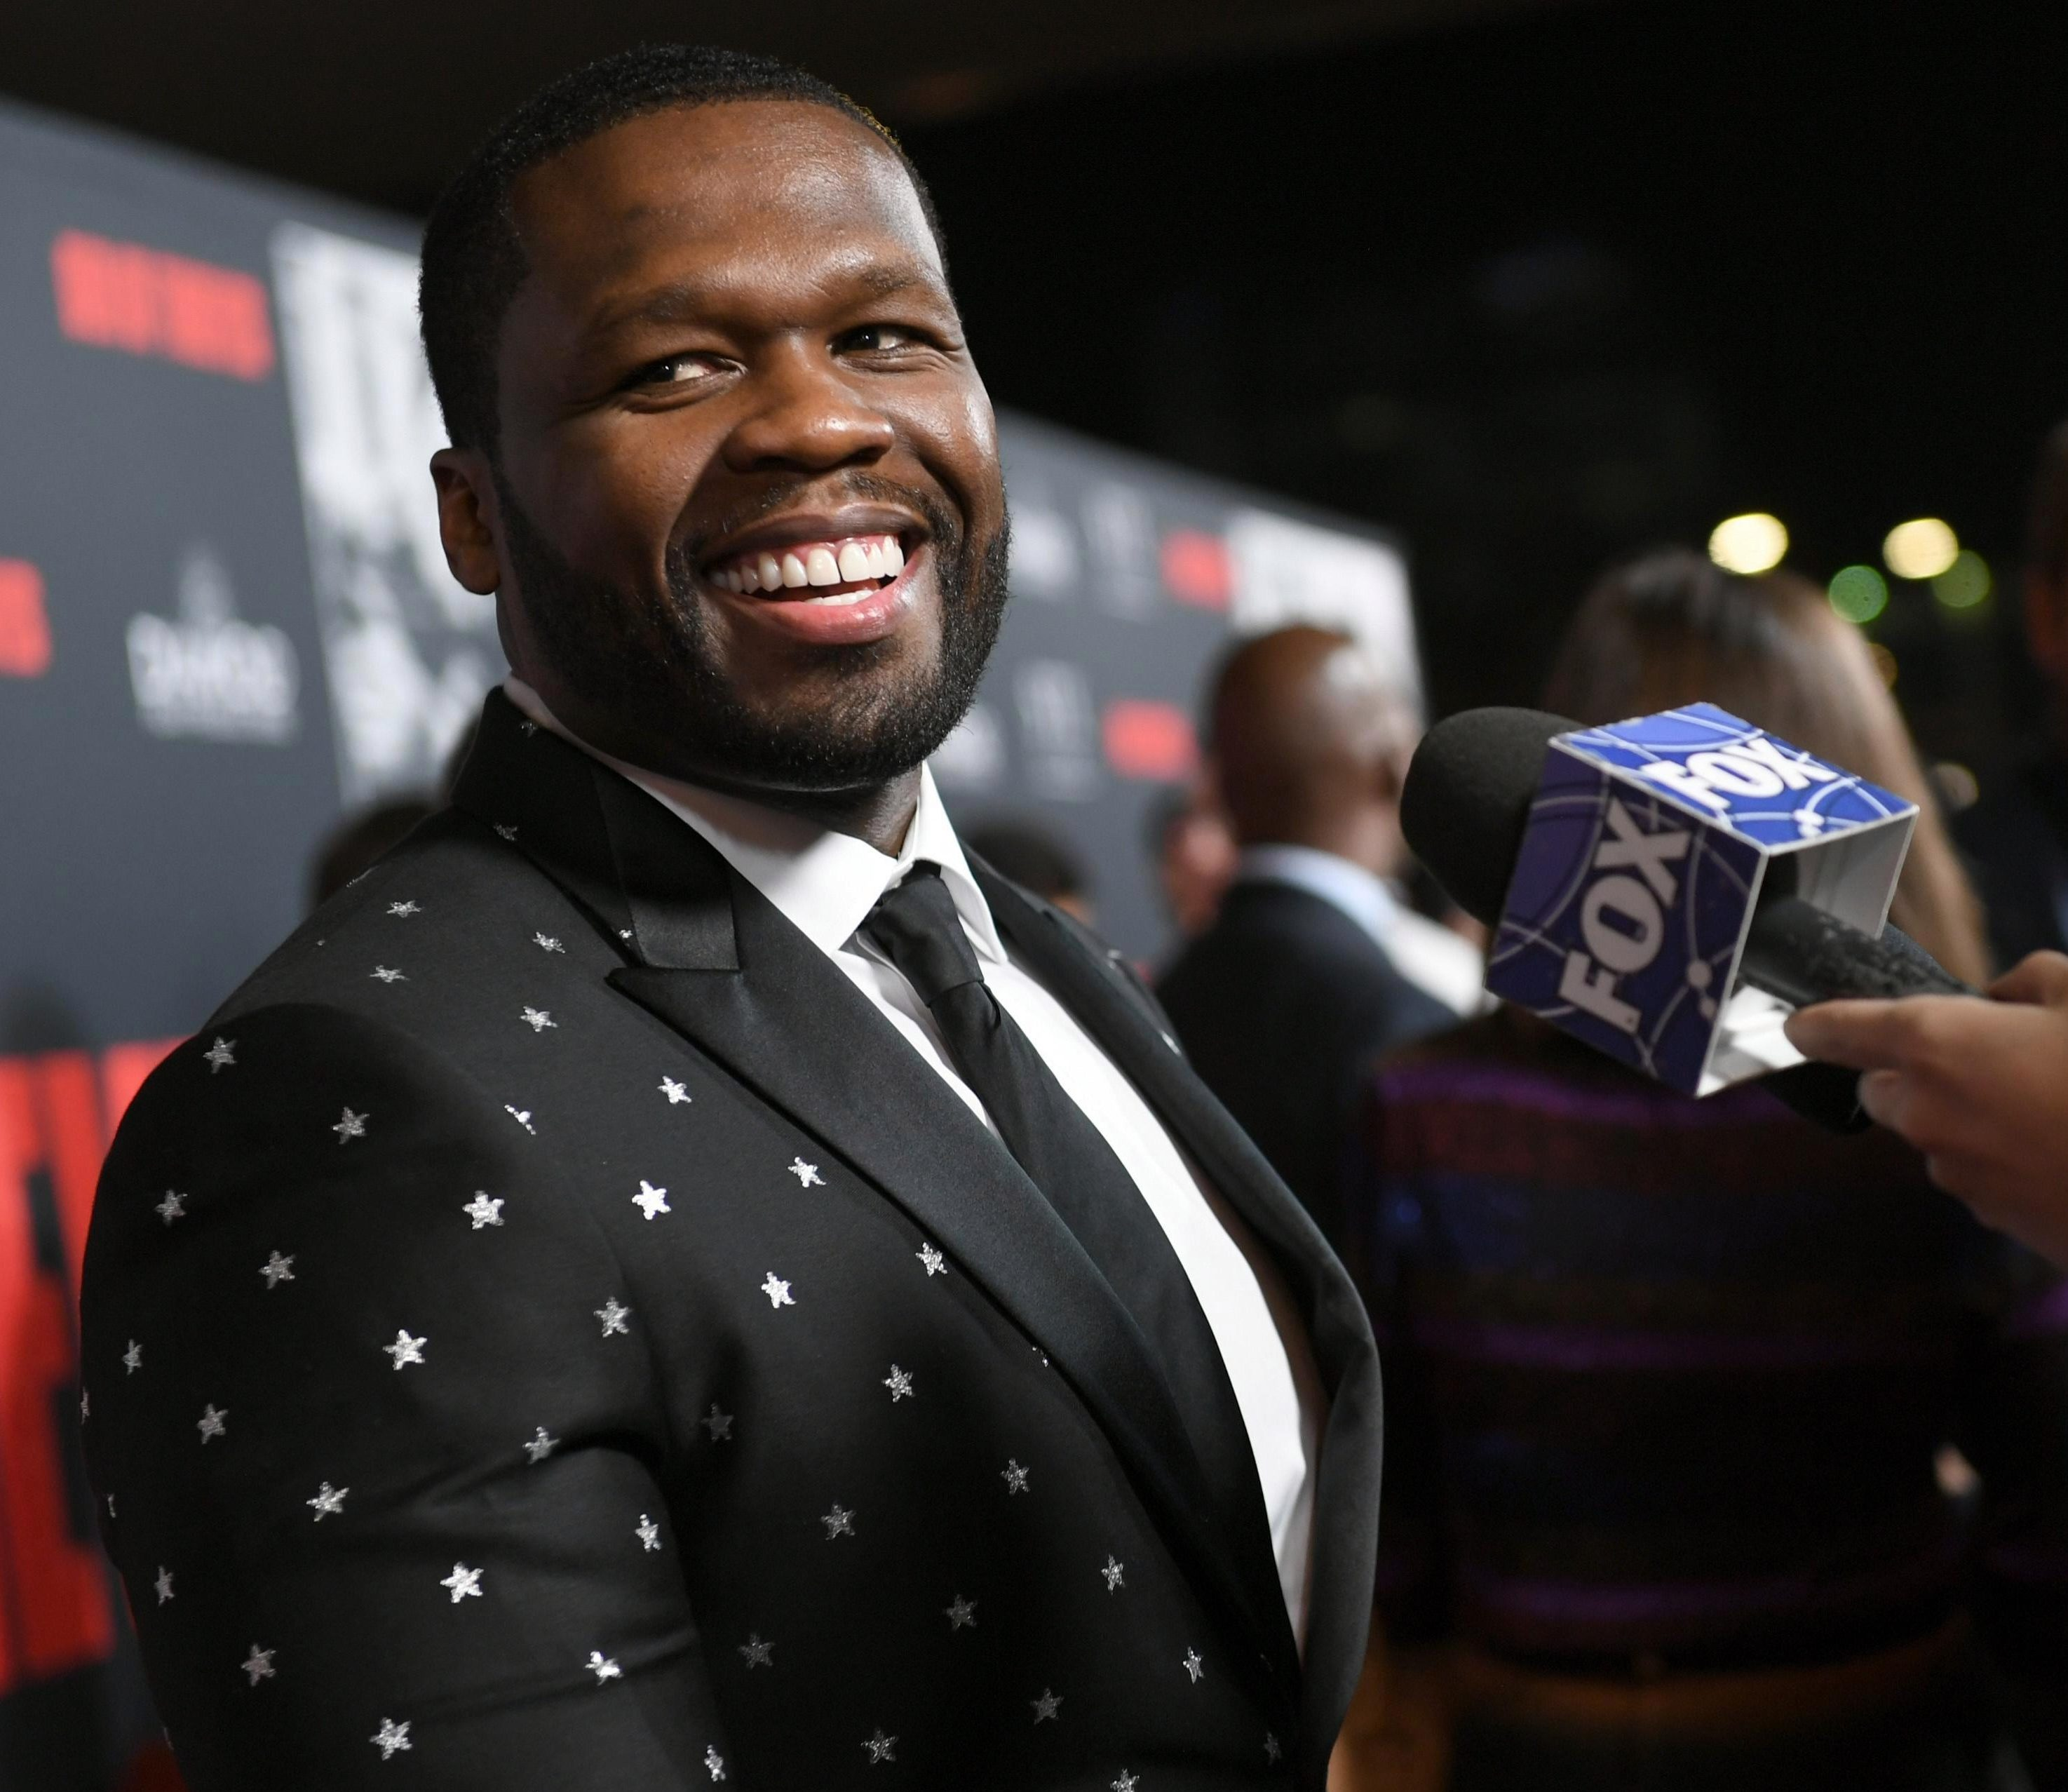 50 Cent laughed off Conor McGregor's social media taunts